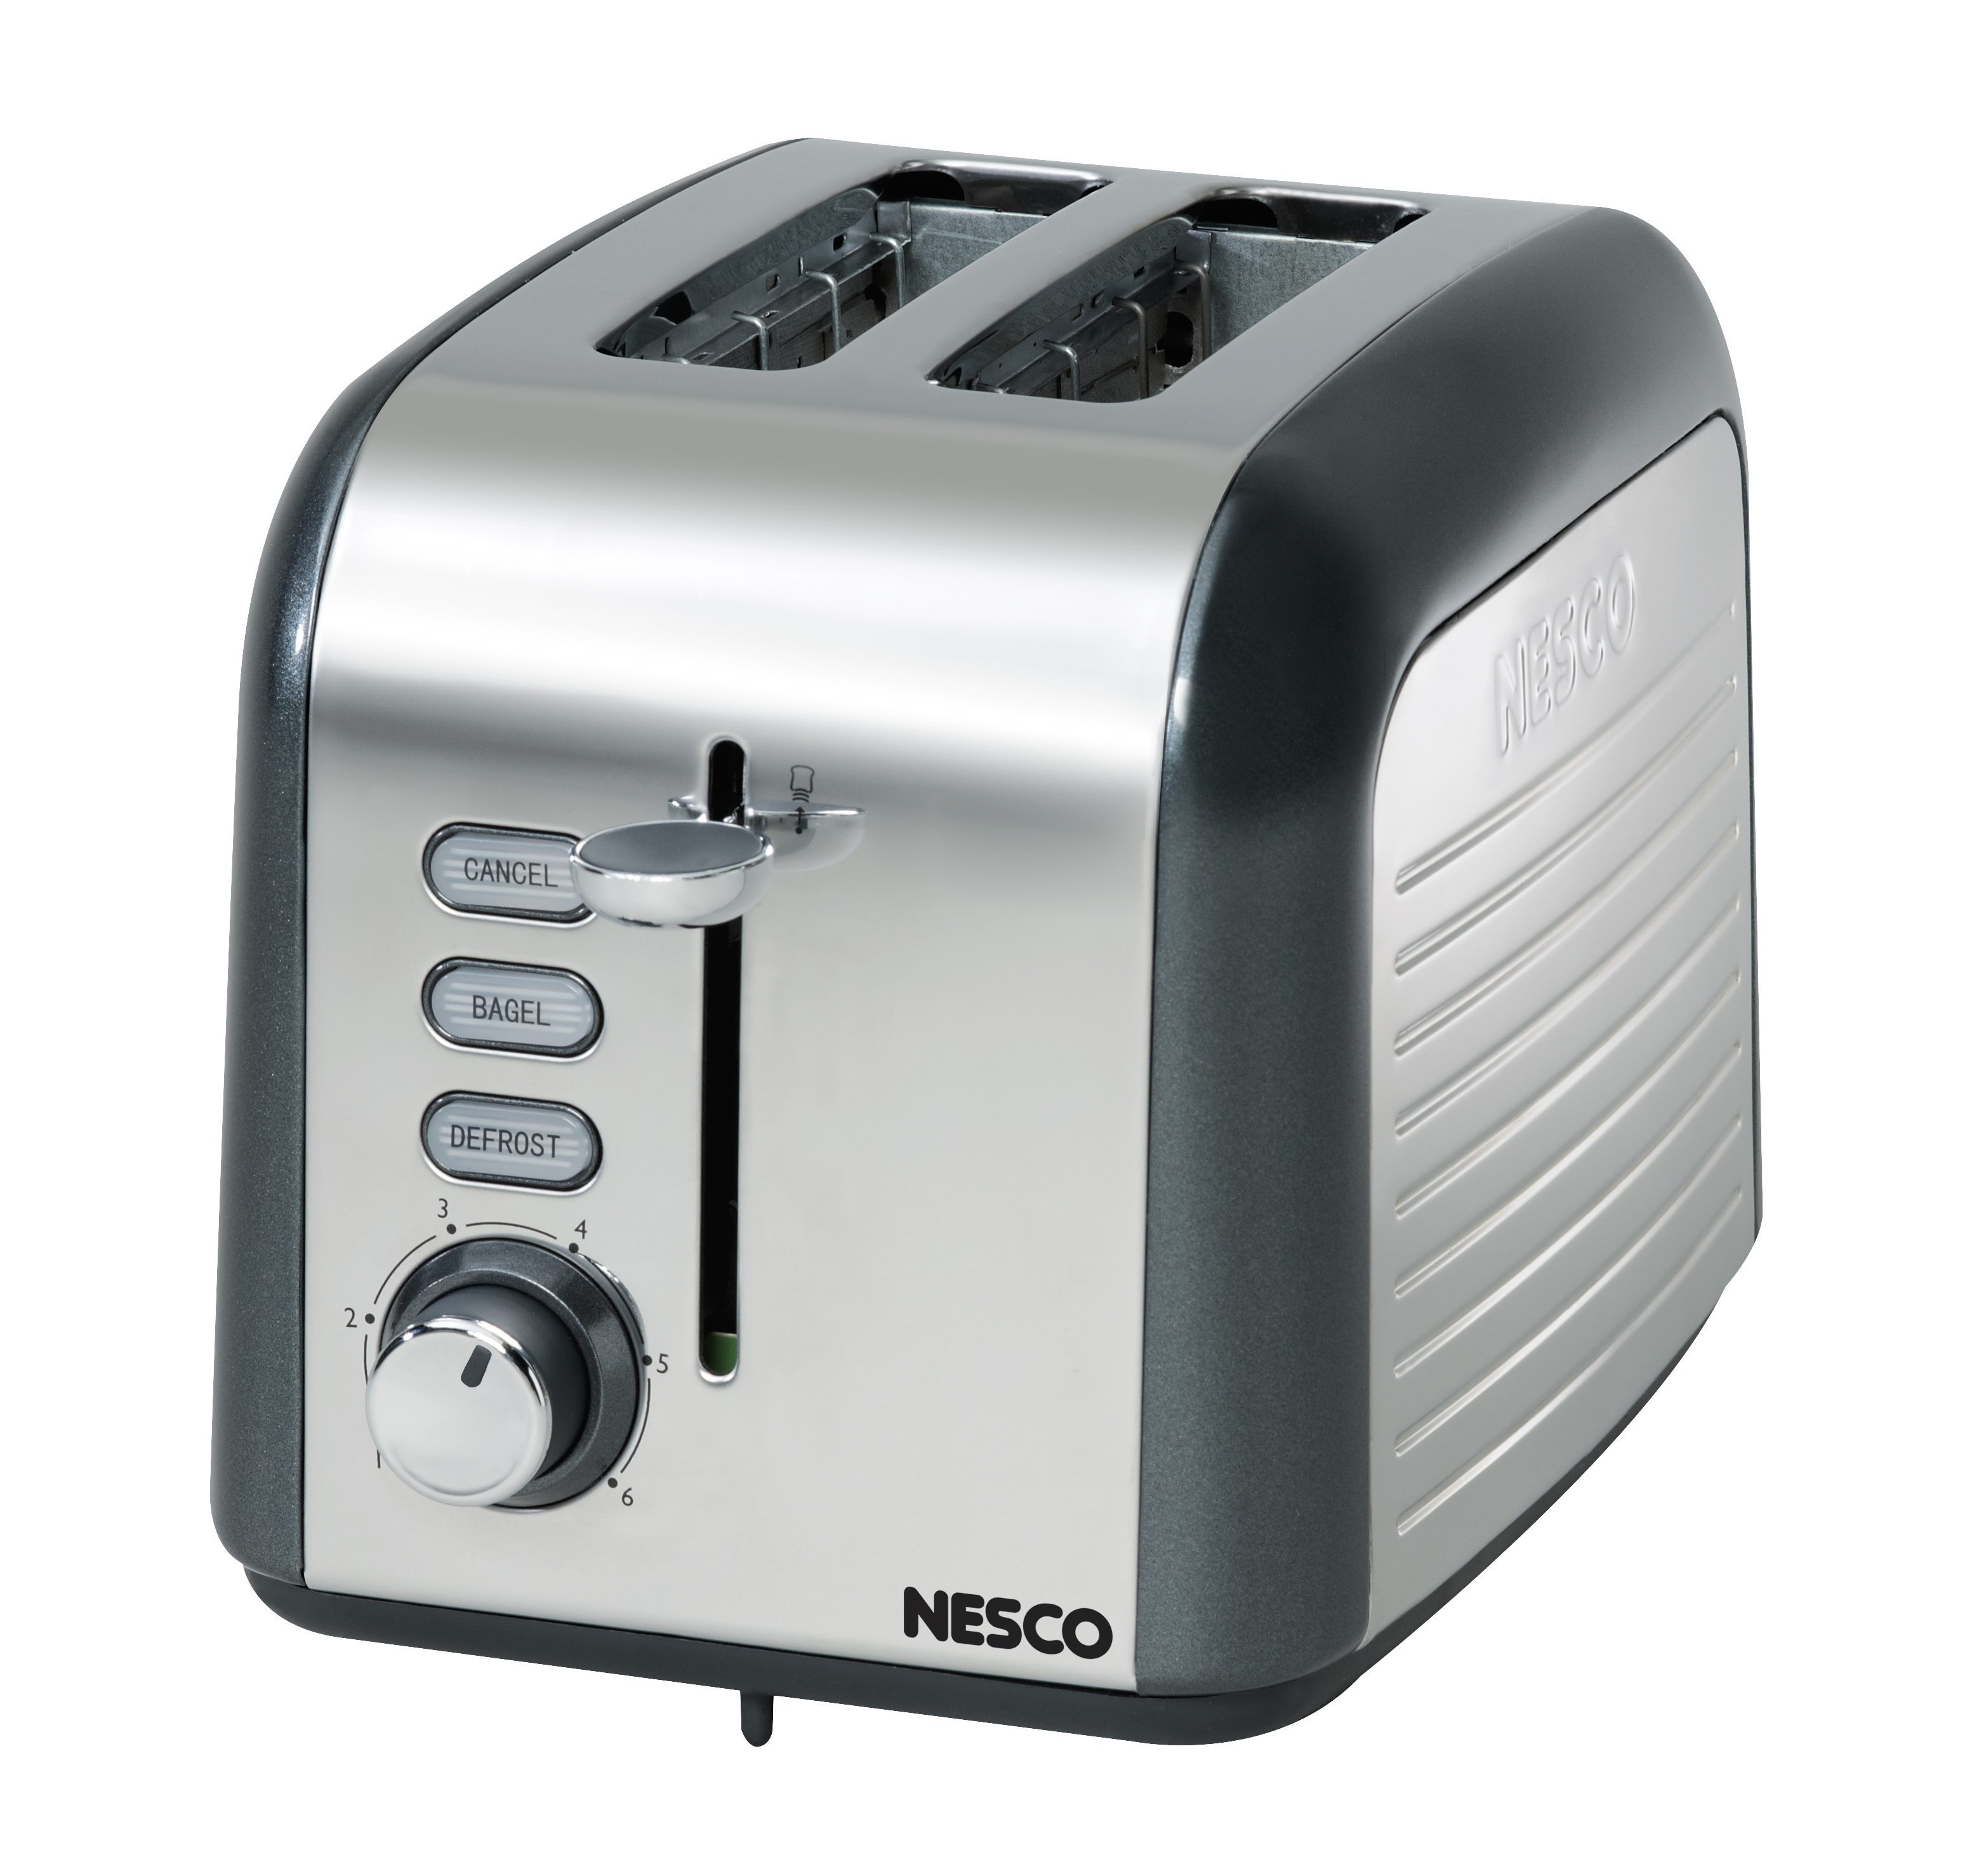 Nesco T1000-13 Everyday Two Slice Toaster Gray/Chrome